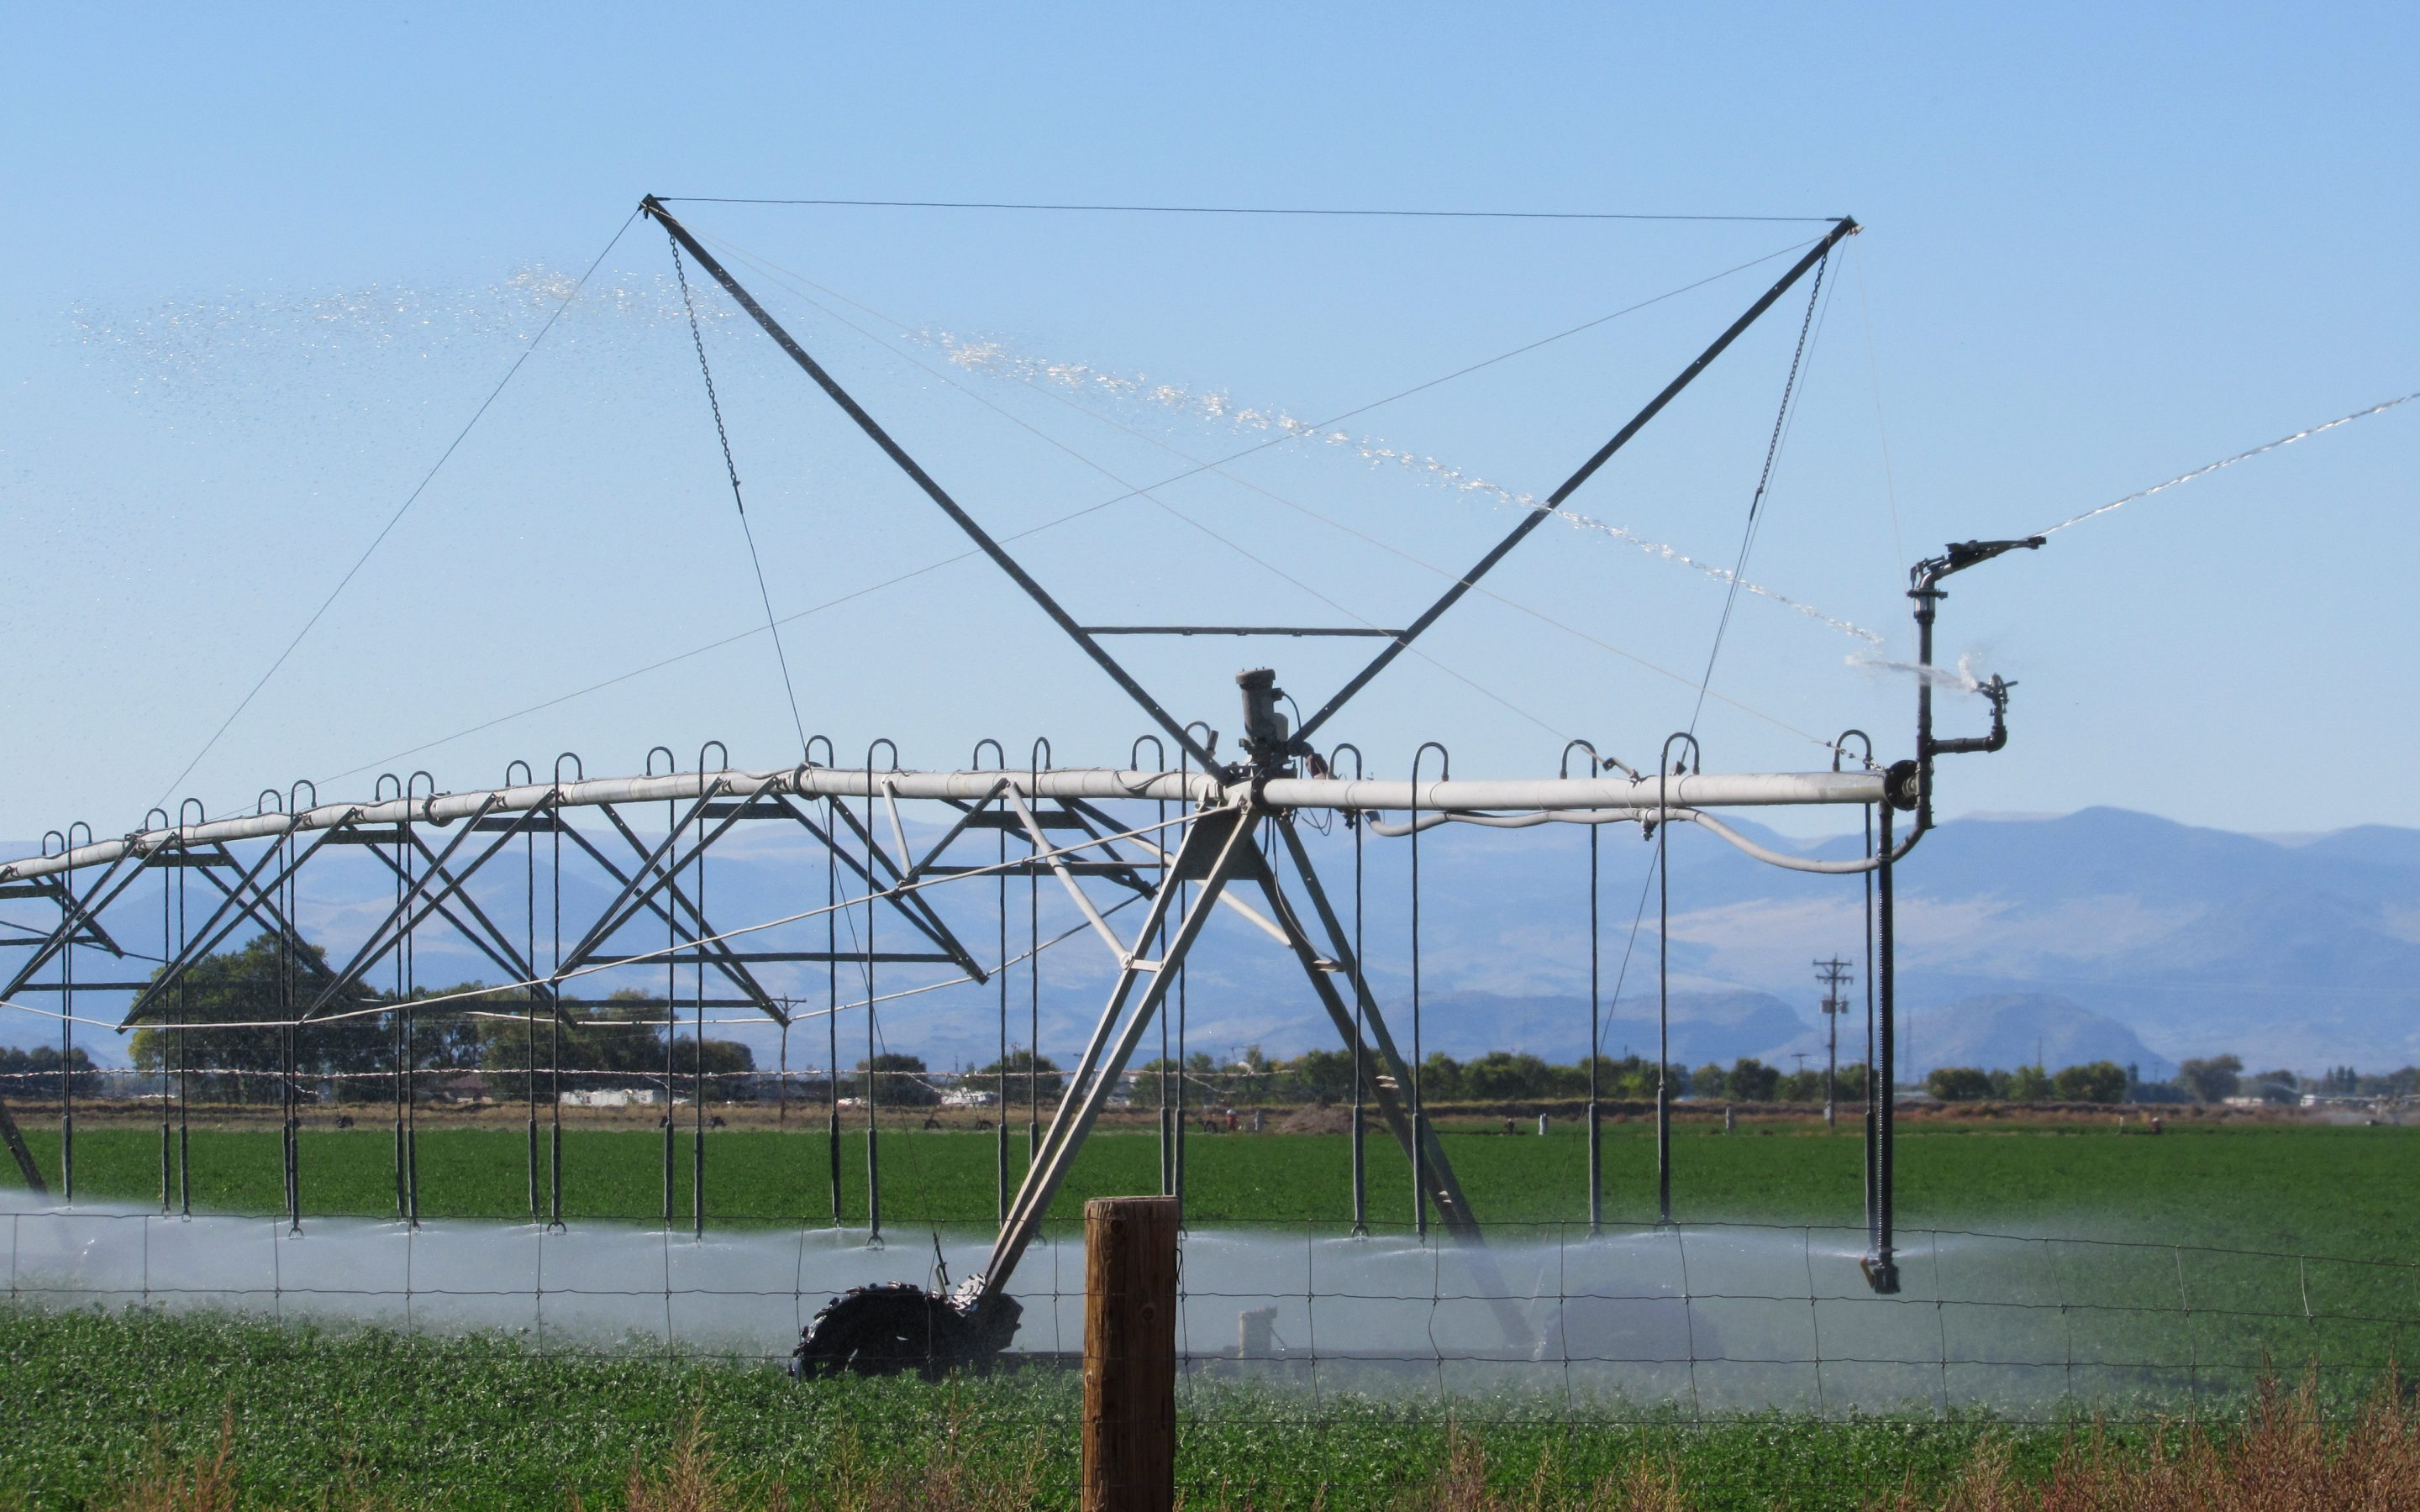 A center pivot irrigates a field in the San Luis Valley. Tensions have been high in the valley since Front Range developers proposed moving water out of the valley to metro Denver. Fresh Water News, along with PBS documentary series This American Land, traveled to the valley as part of a new partnership. Credit: Jerd Smith